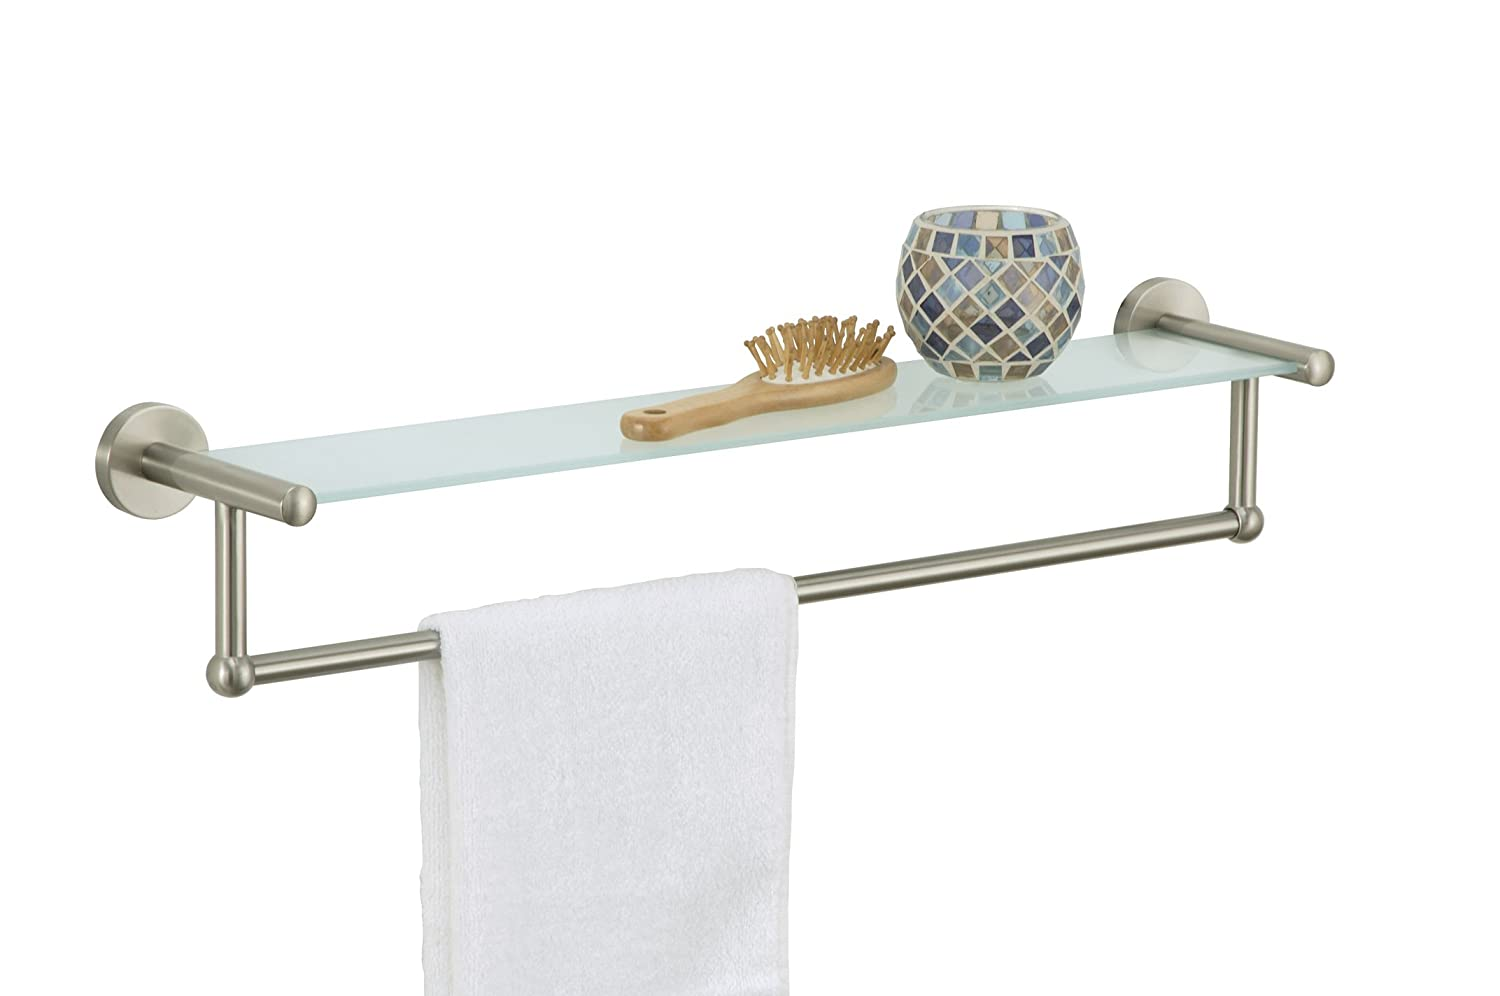 Bathroom wall shelf - Amazon Com Organize It All Satin Nickel Glass Shelf With Towel Bar Home Kitchen